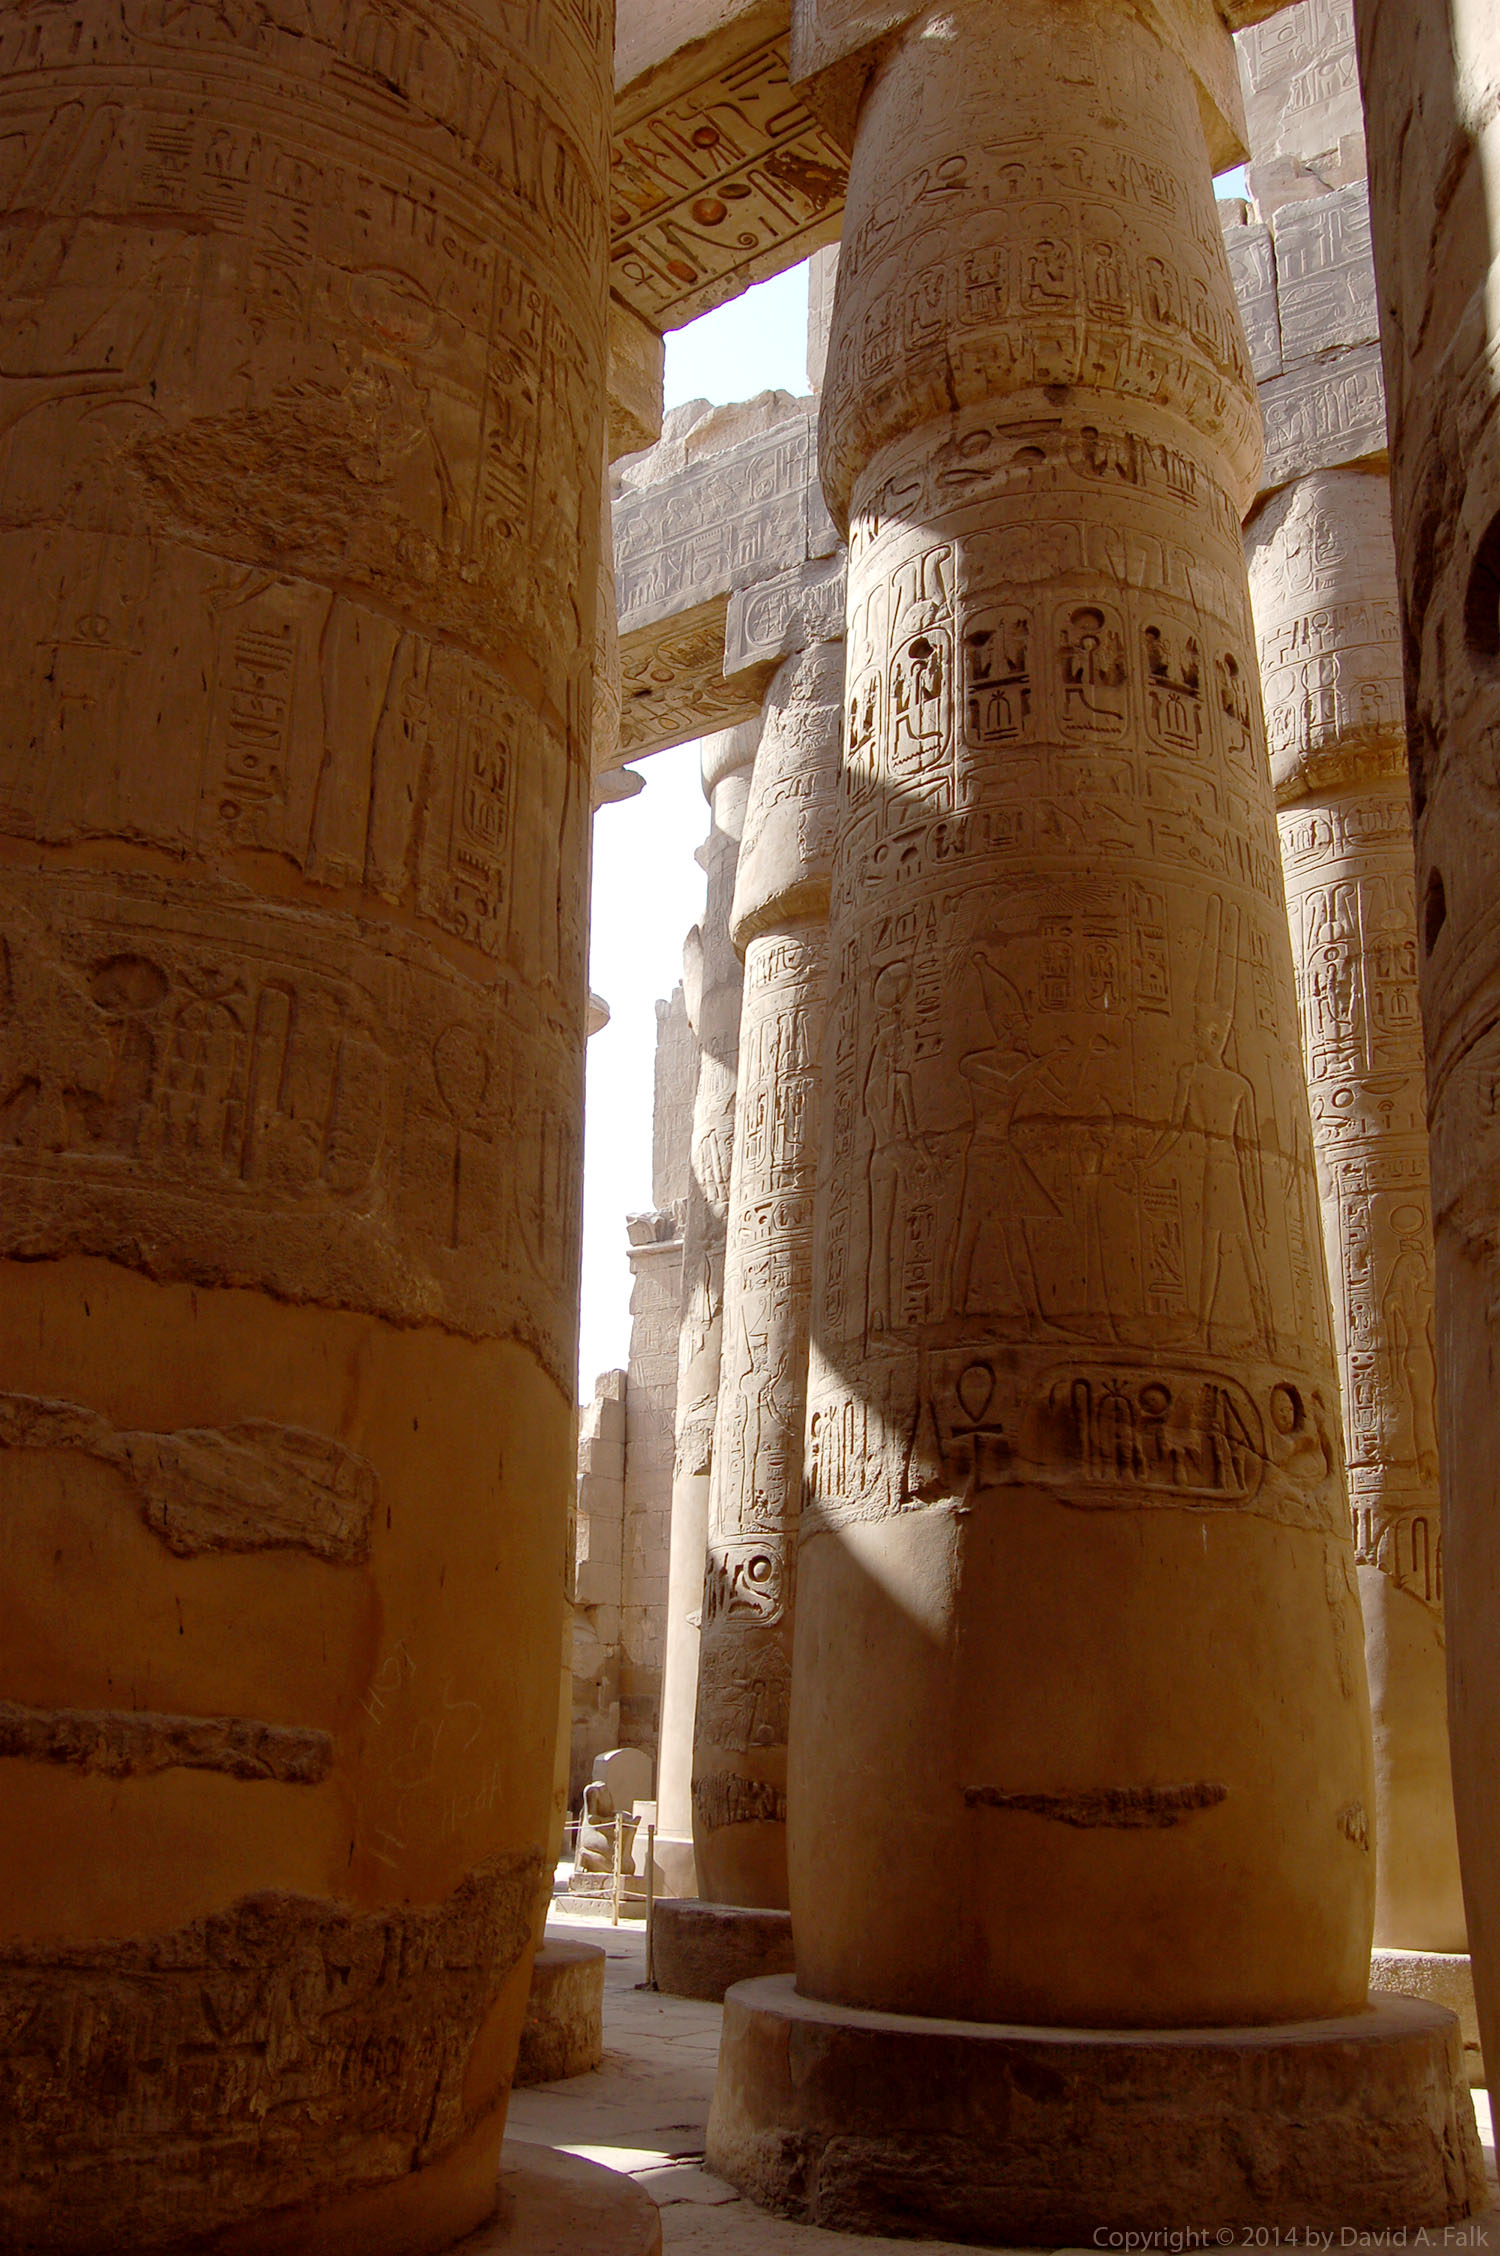 Hypostyle Hall of Ramesses II at Karnak Temple